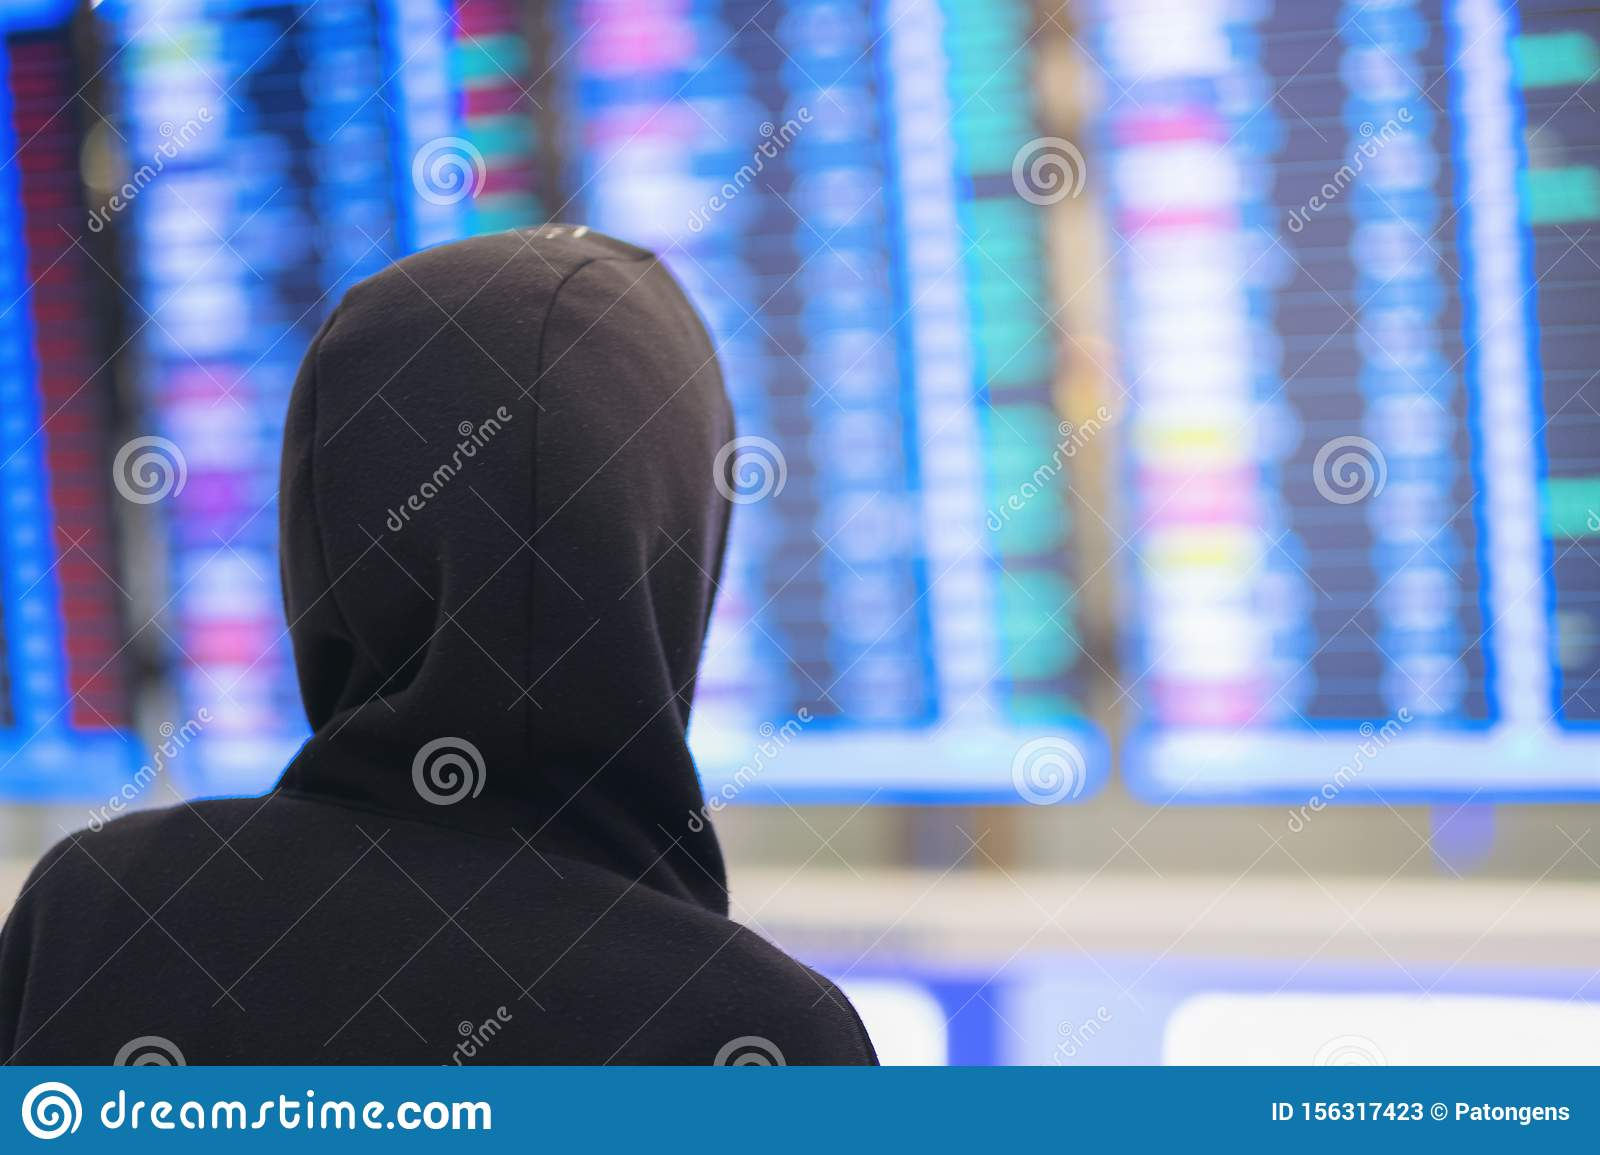 Back view of young man in airport near flight timetable, hacker background of departure board at airport